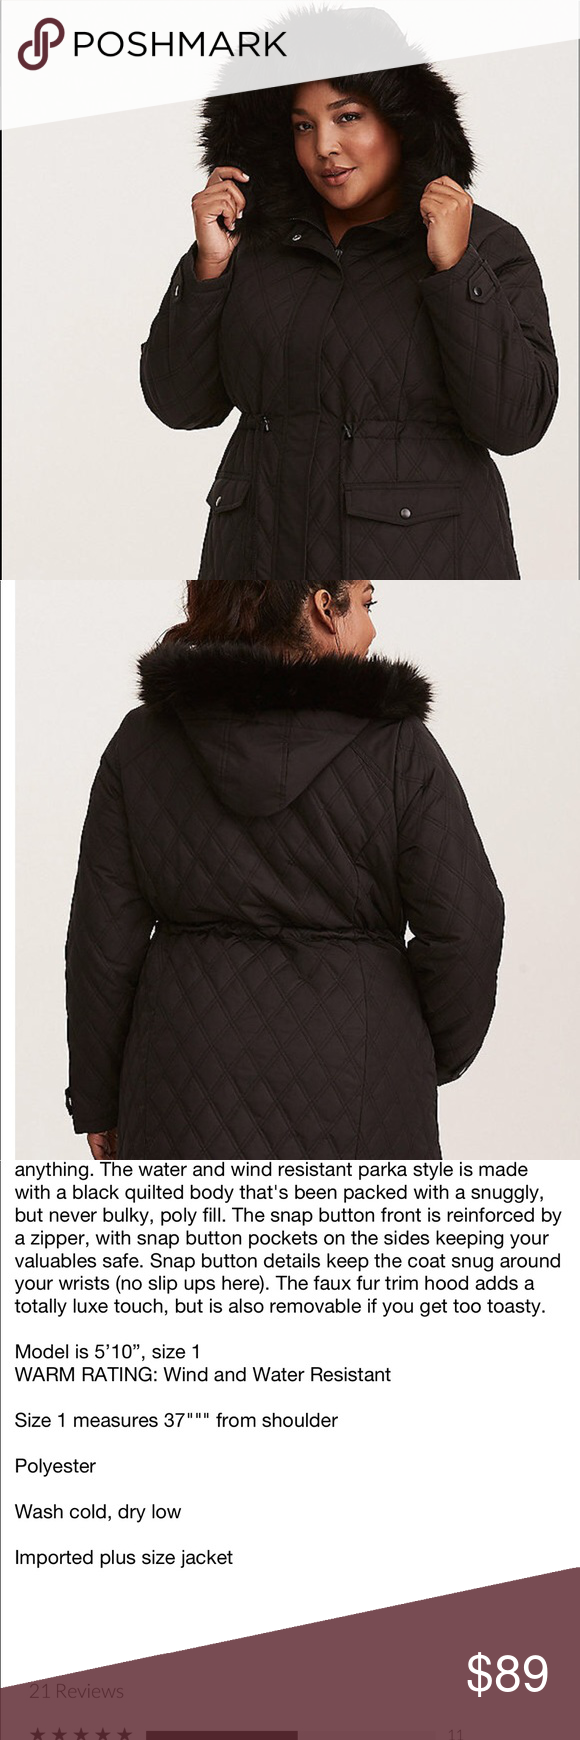 839015d872b NWT Torrid size 00 quilted faux fur coat New Torrid size medium torrid  Jackets   Coats